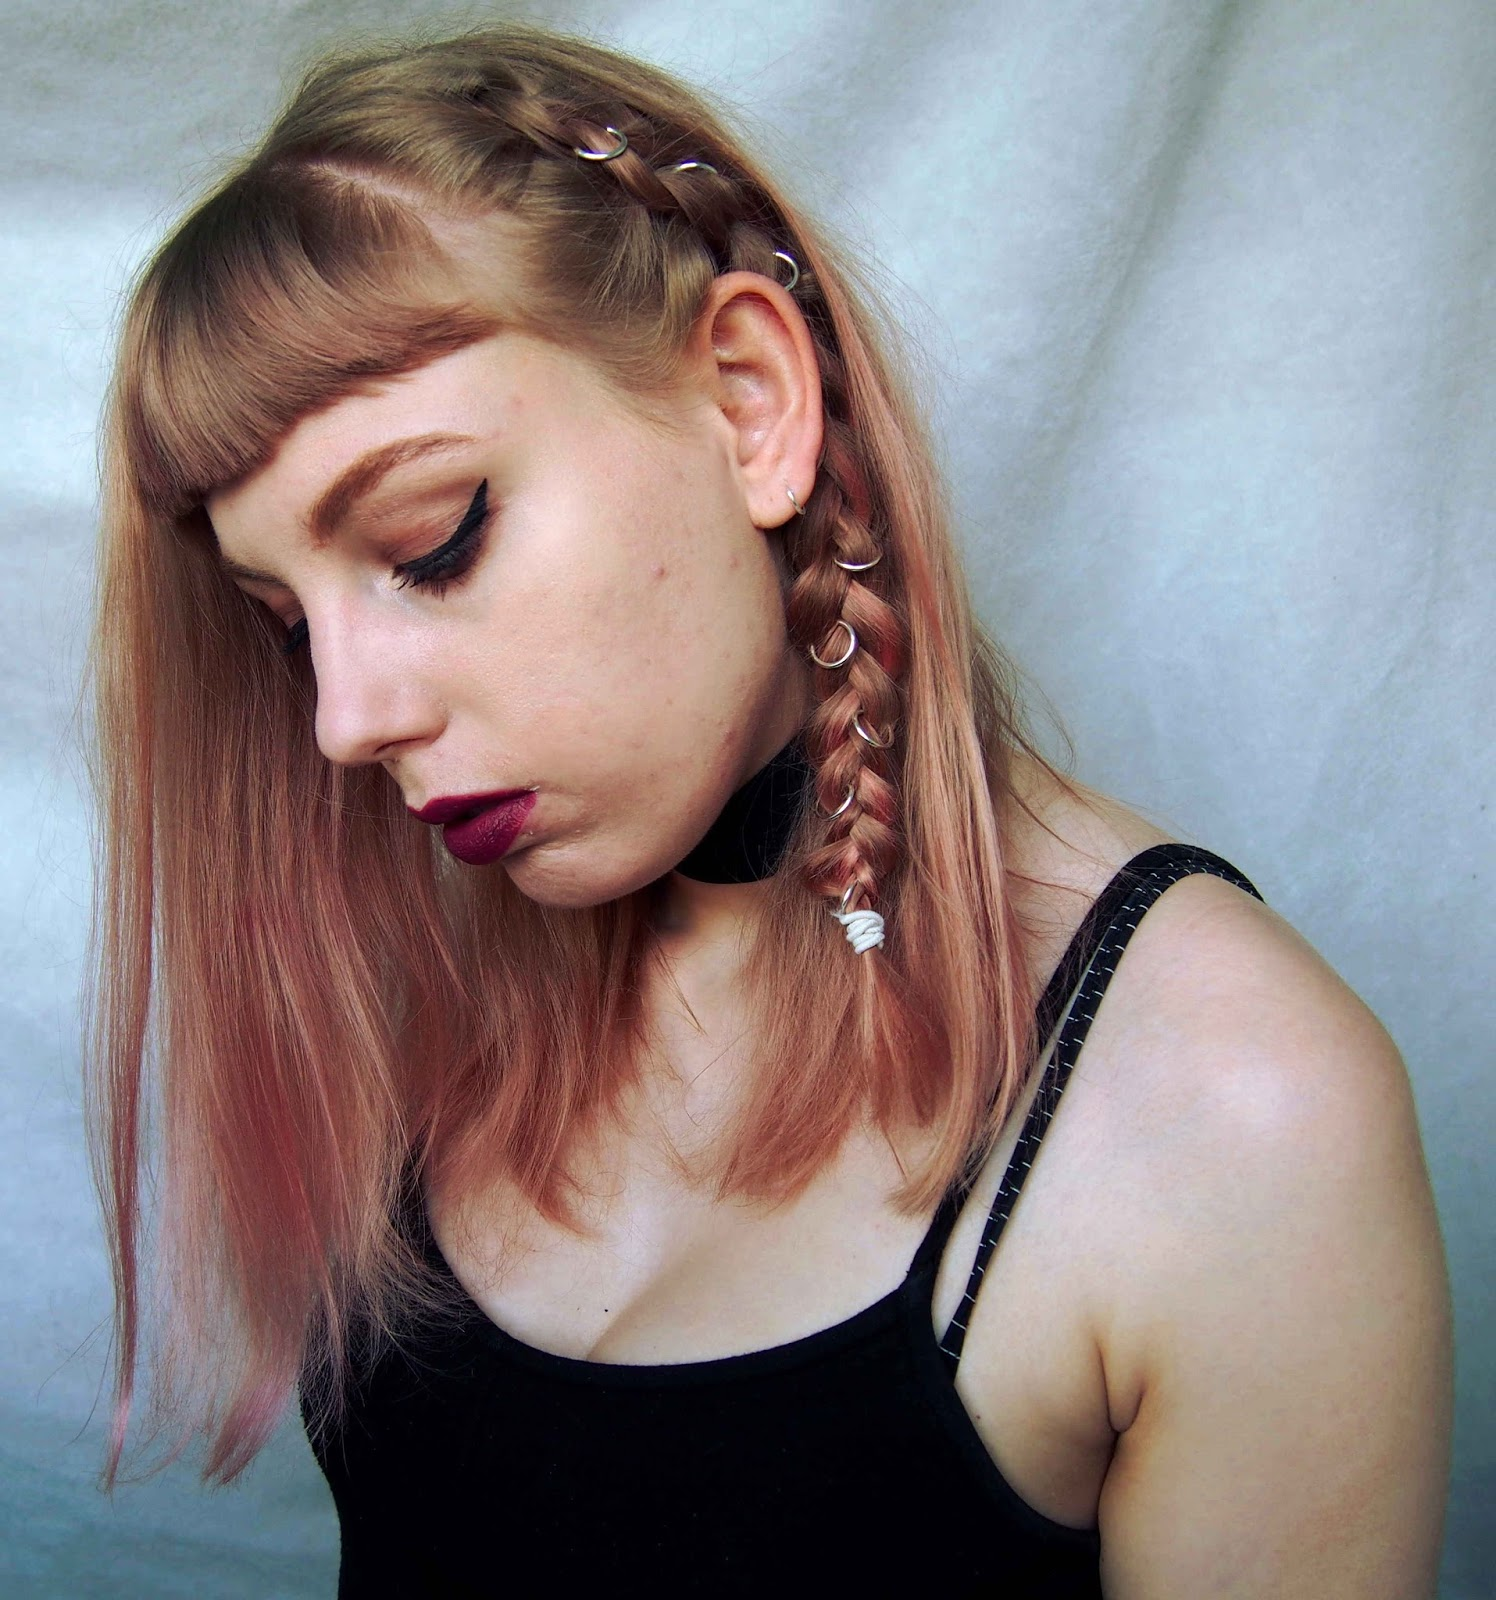 grunge hairstyle, dutch braid, grunge hair, braided hair, festival hairstyle plaited hair, hair rings, how to wear hair rings, grunge hair rings, pink hair, rose gold hair, dusty pink hair 2